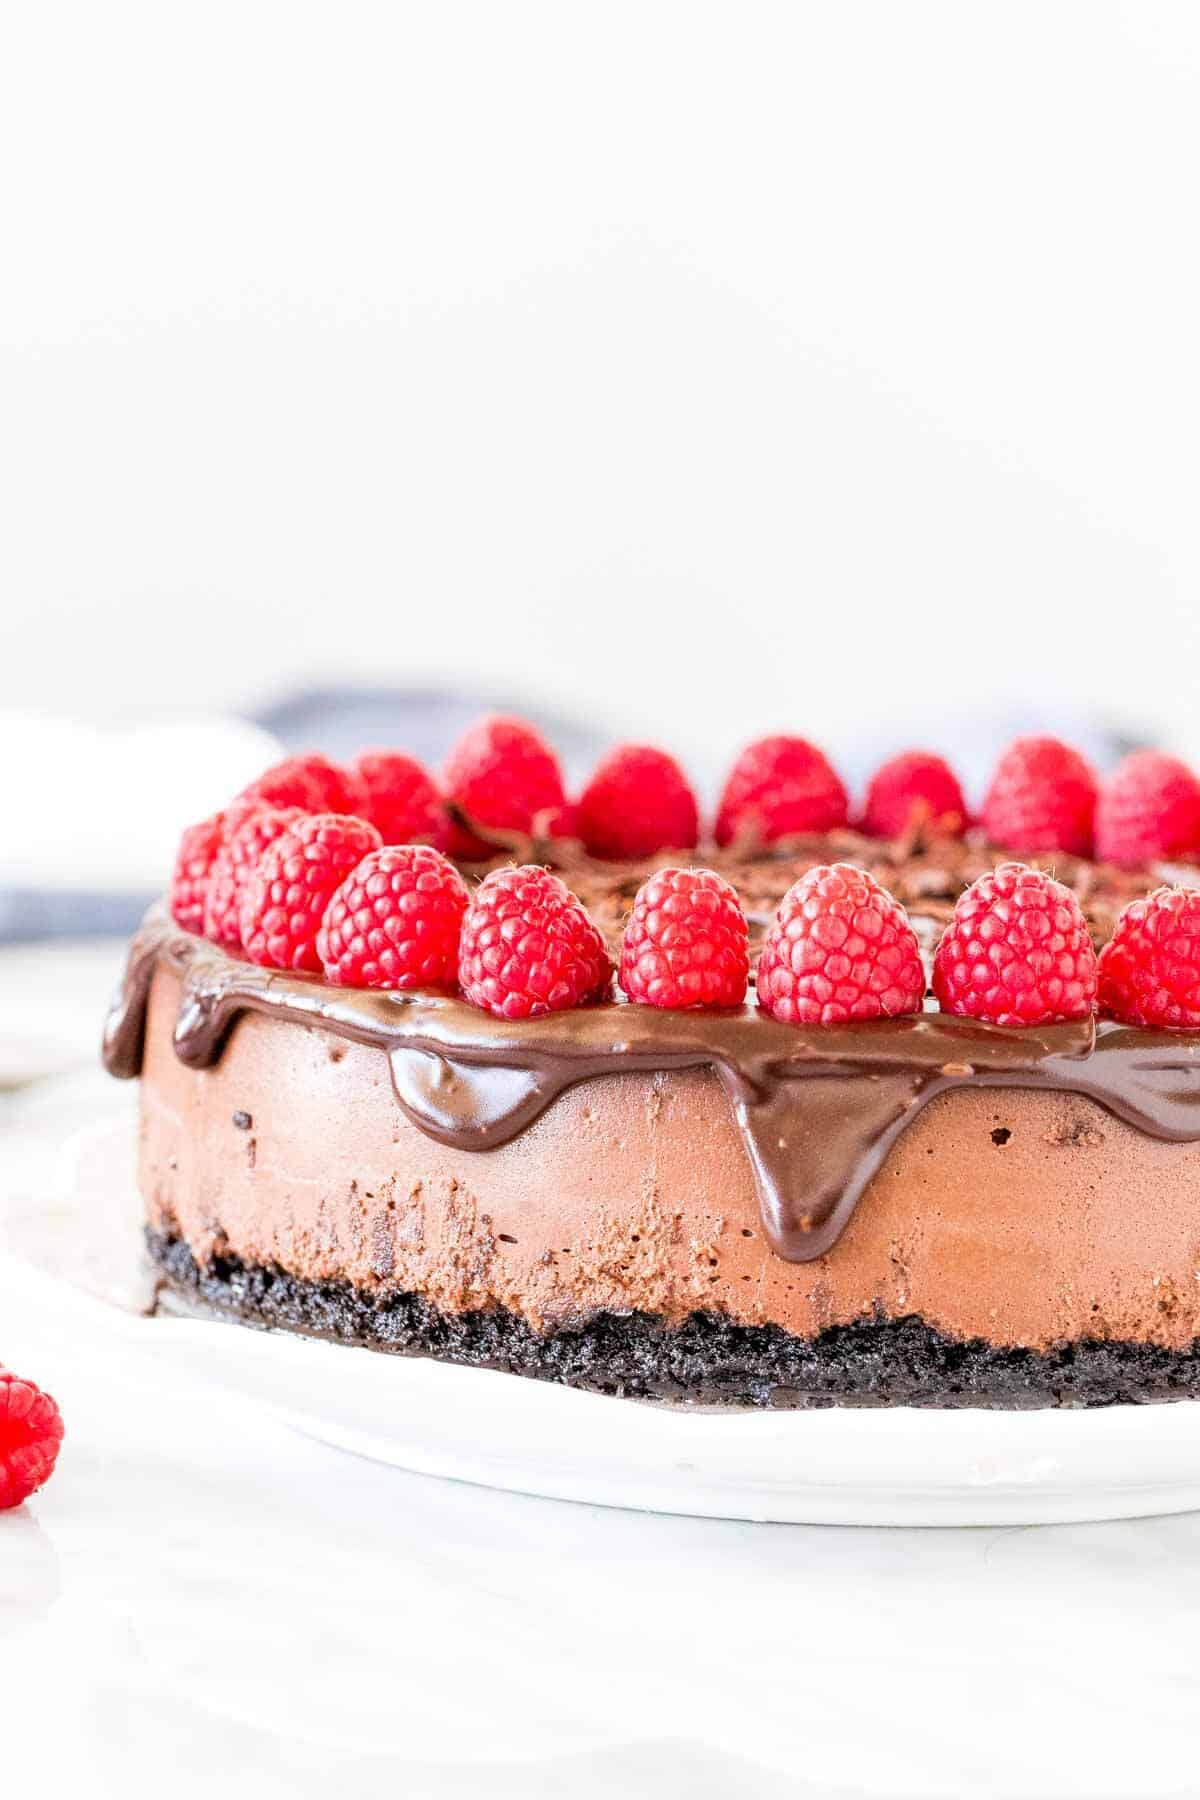 Chocolate cheesecake with chocolate ganache and raspberries on top.